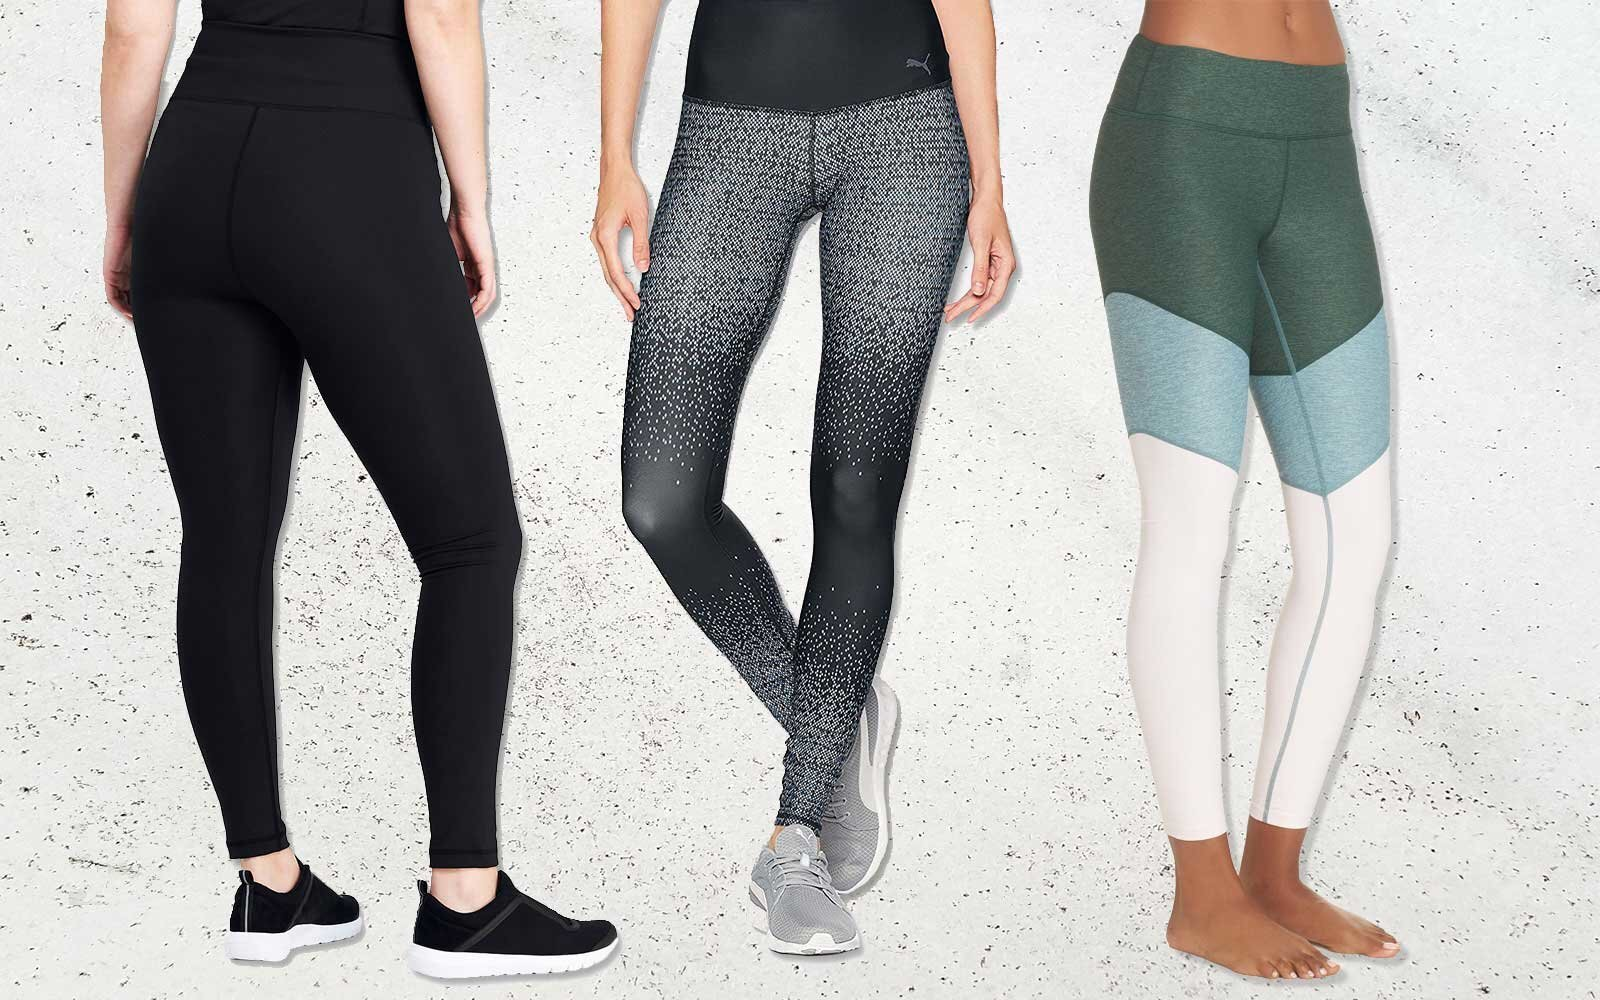 c497770386c Why You Should Fly in Compression Leggings — and 12 Pairs to Try